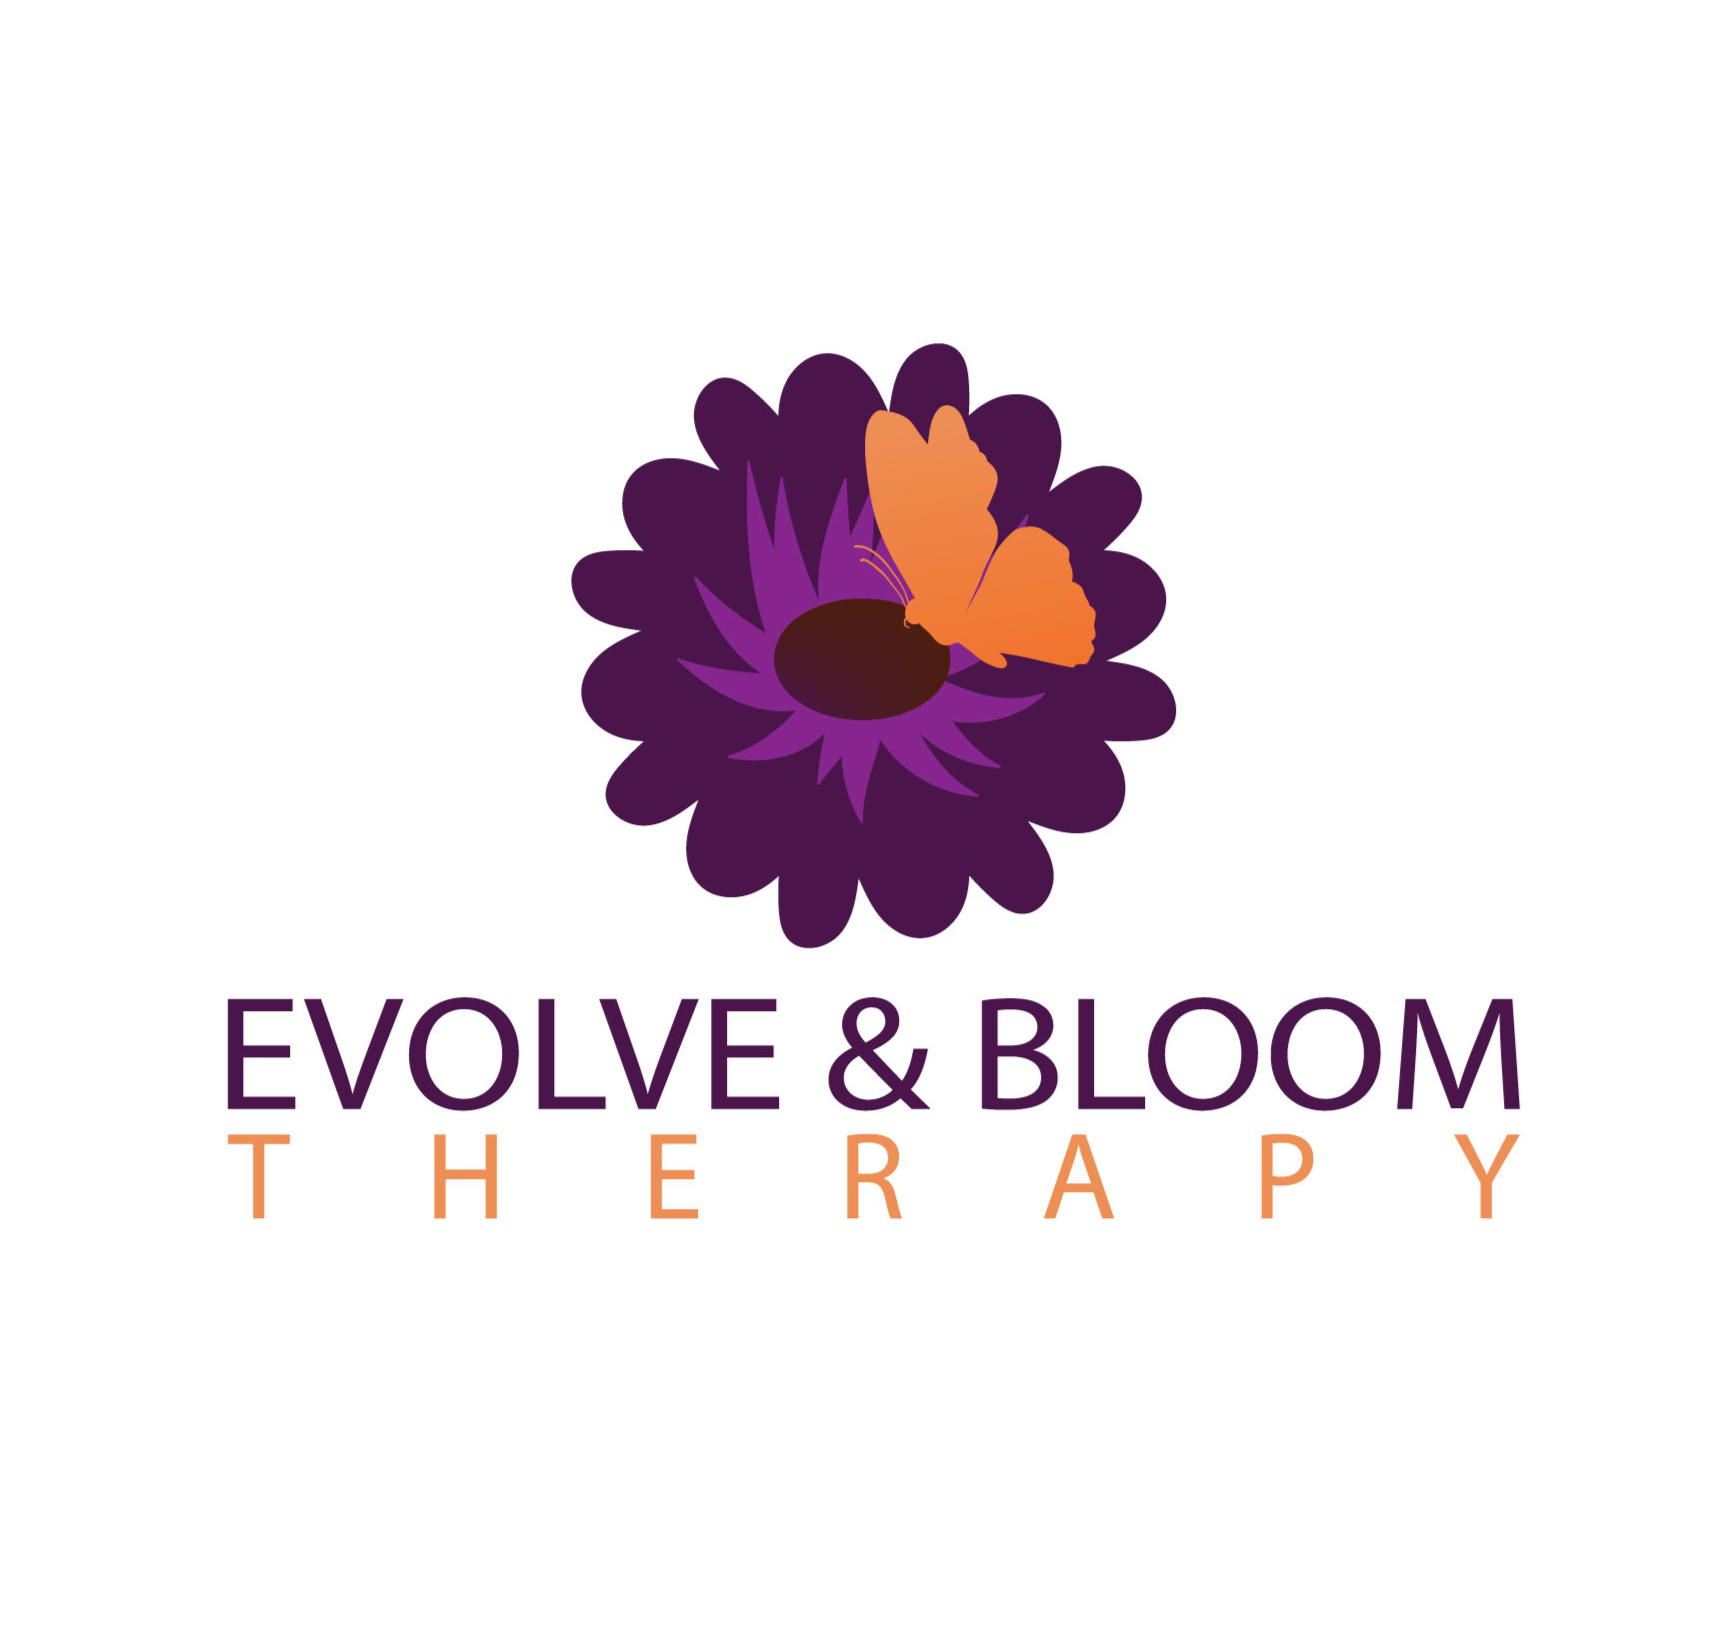 Evolve & Bloom Therapy